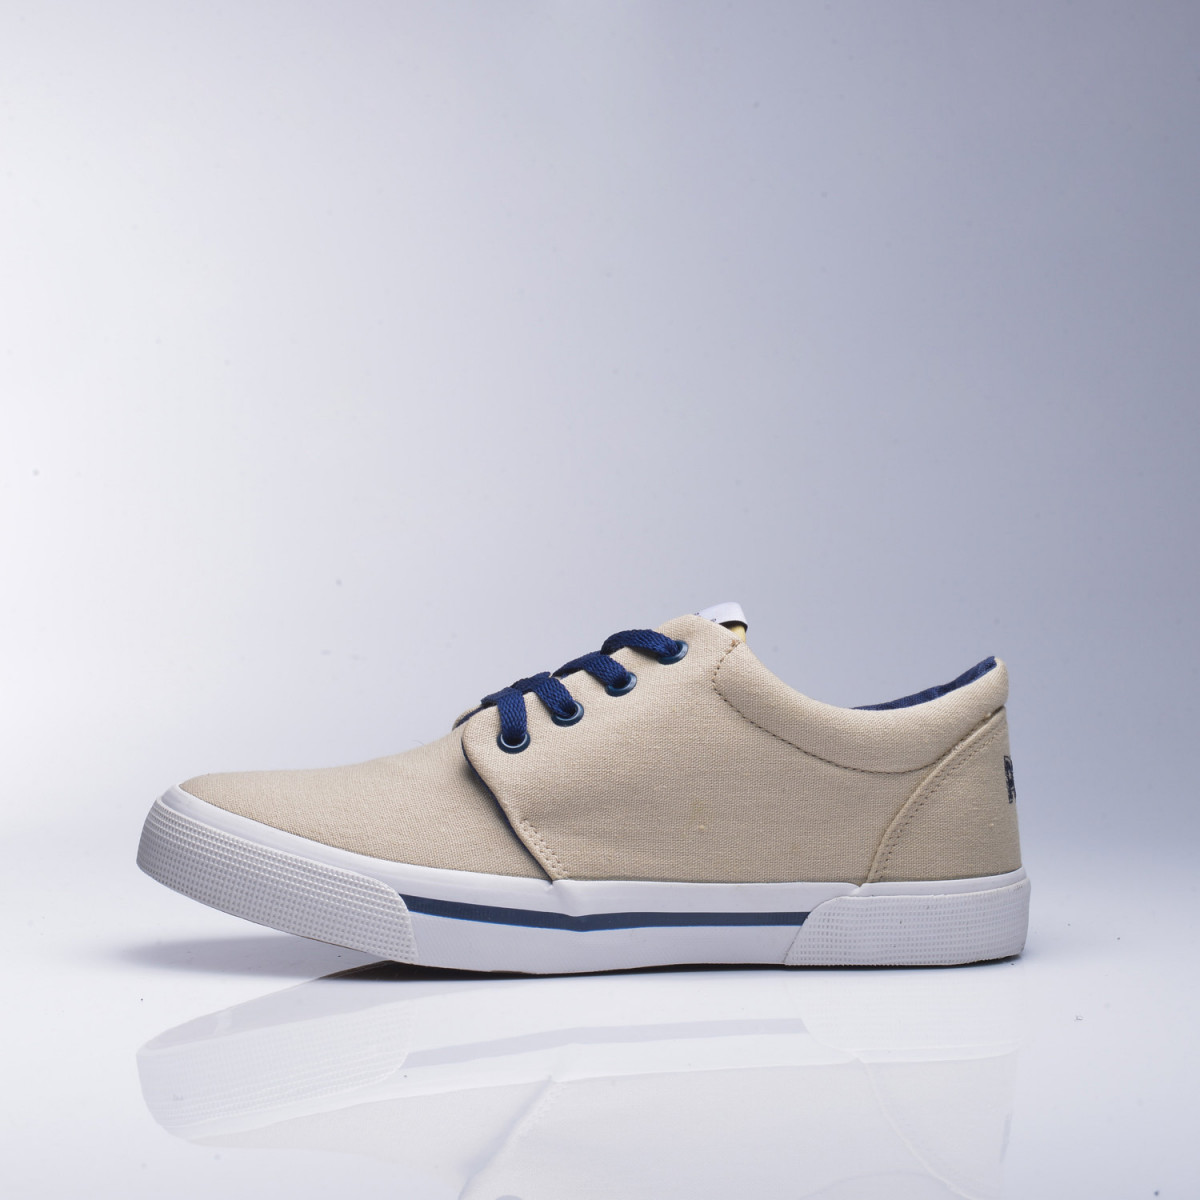 Zapatillas Pony Grab Cvs